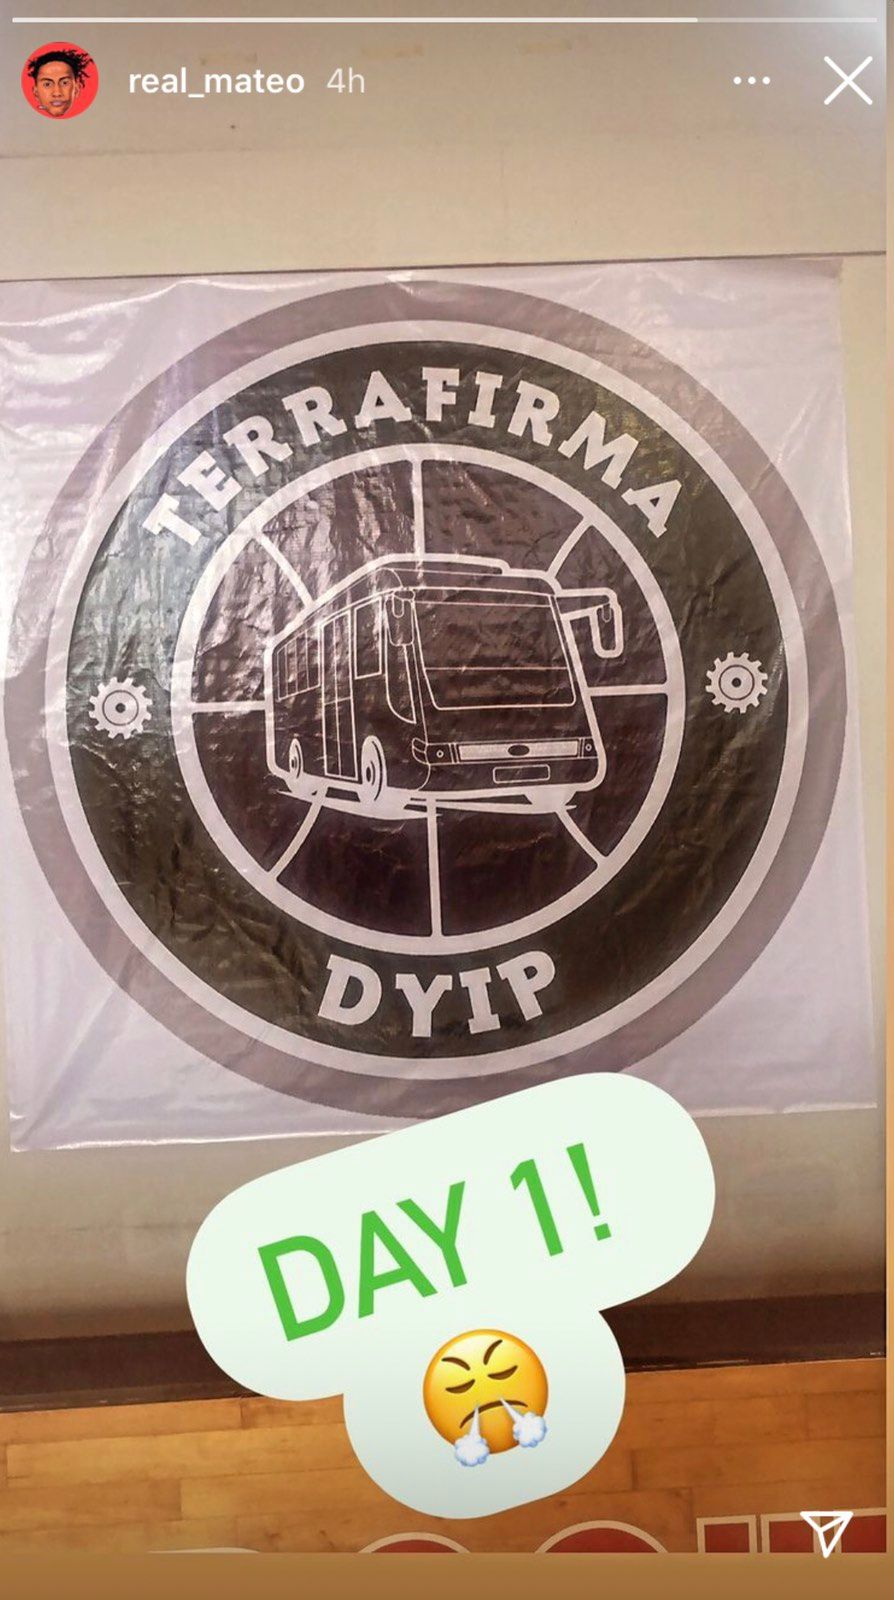 The Terrafirma banner in their headquarters at the Azure Residences